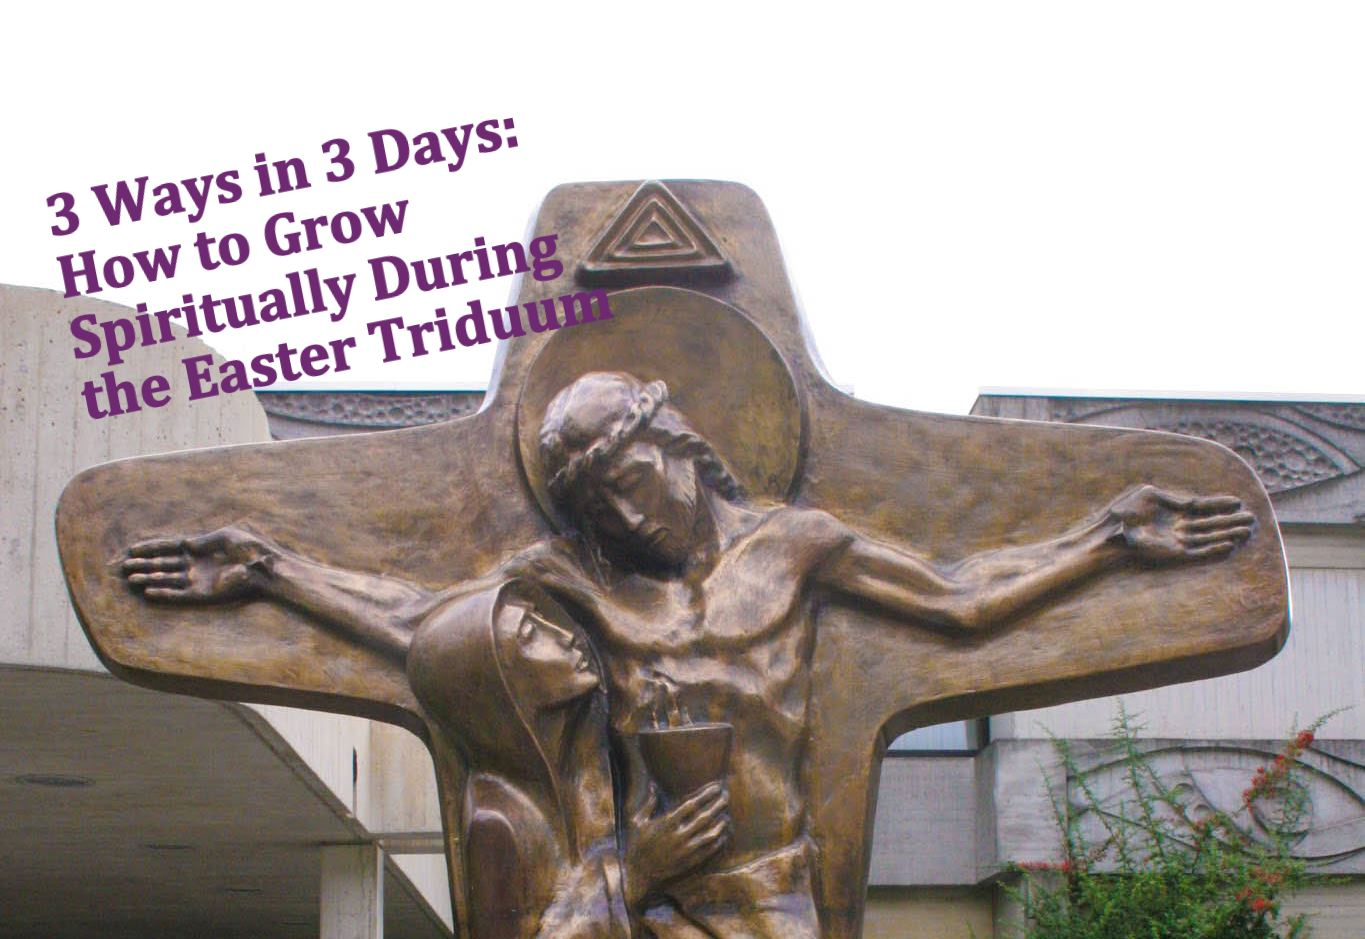 3 Ways for 3 Days: How to Grow Spiritually During the Easter Triduum